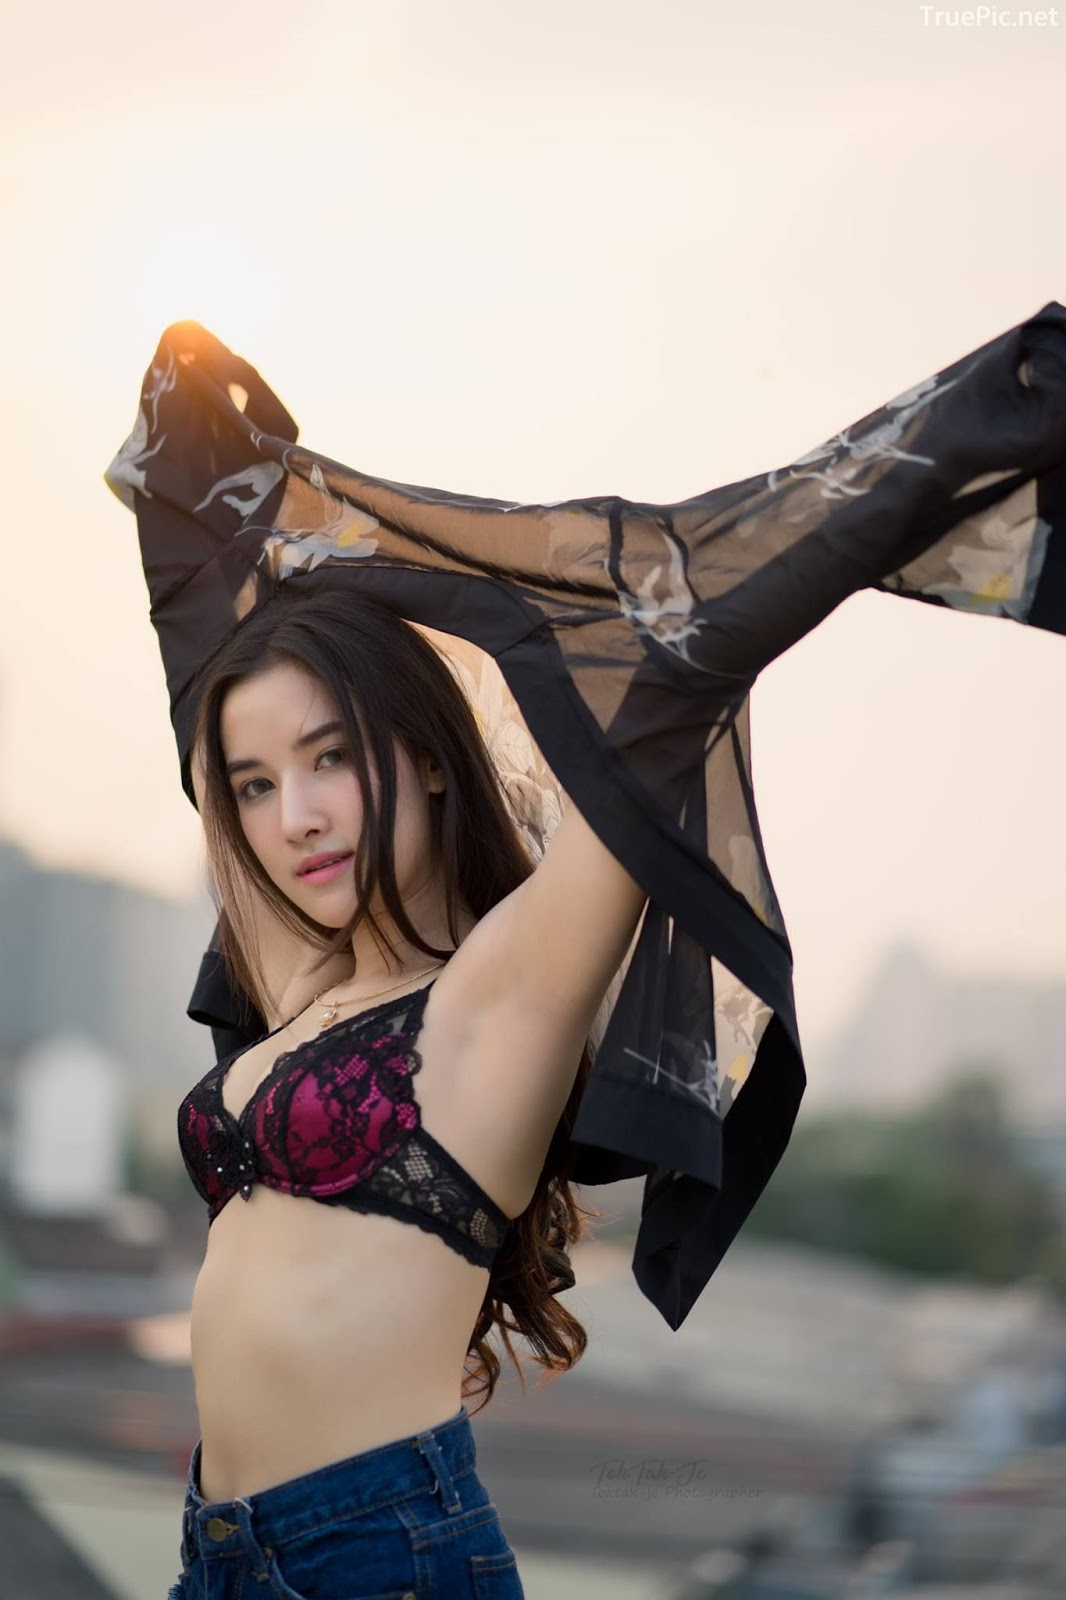 Thailand sexy angel Ploywarin Tippakorn - Black-pink bra and jean on sunset - Picture 5